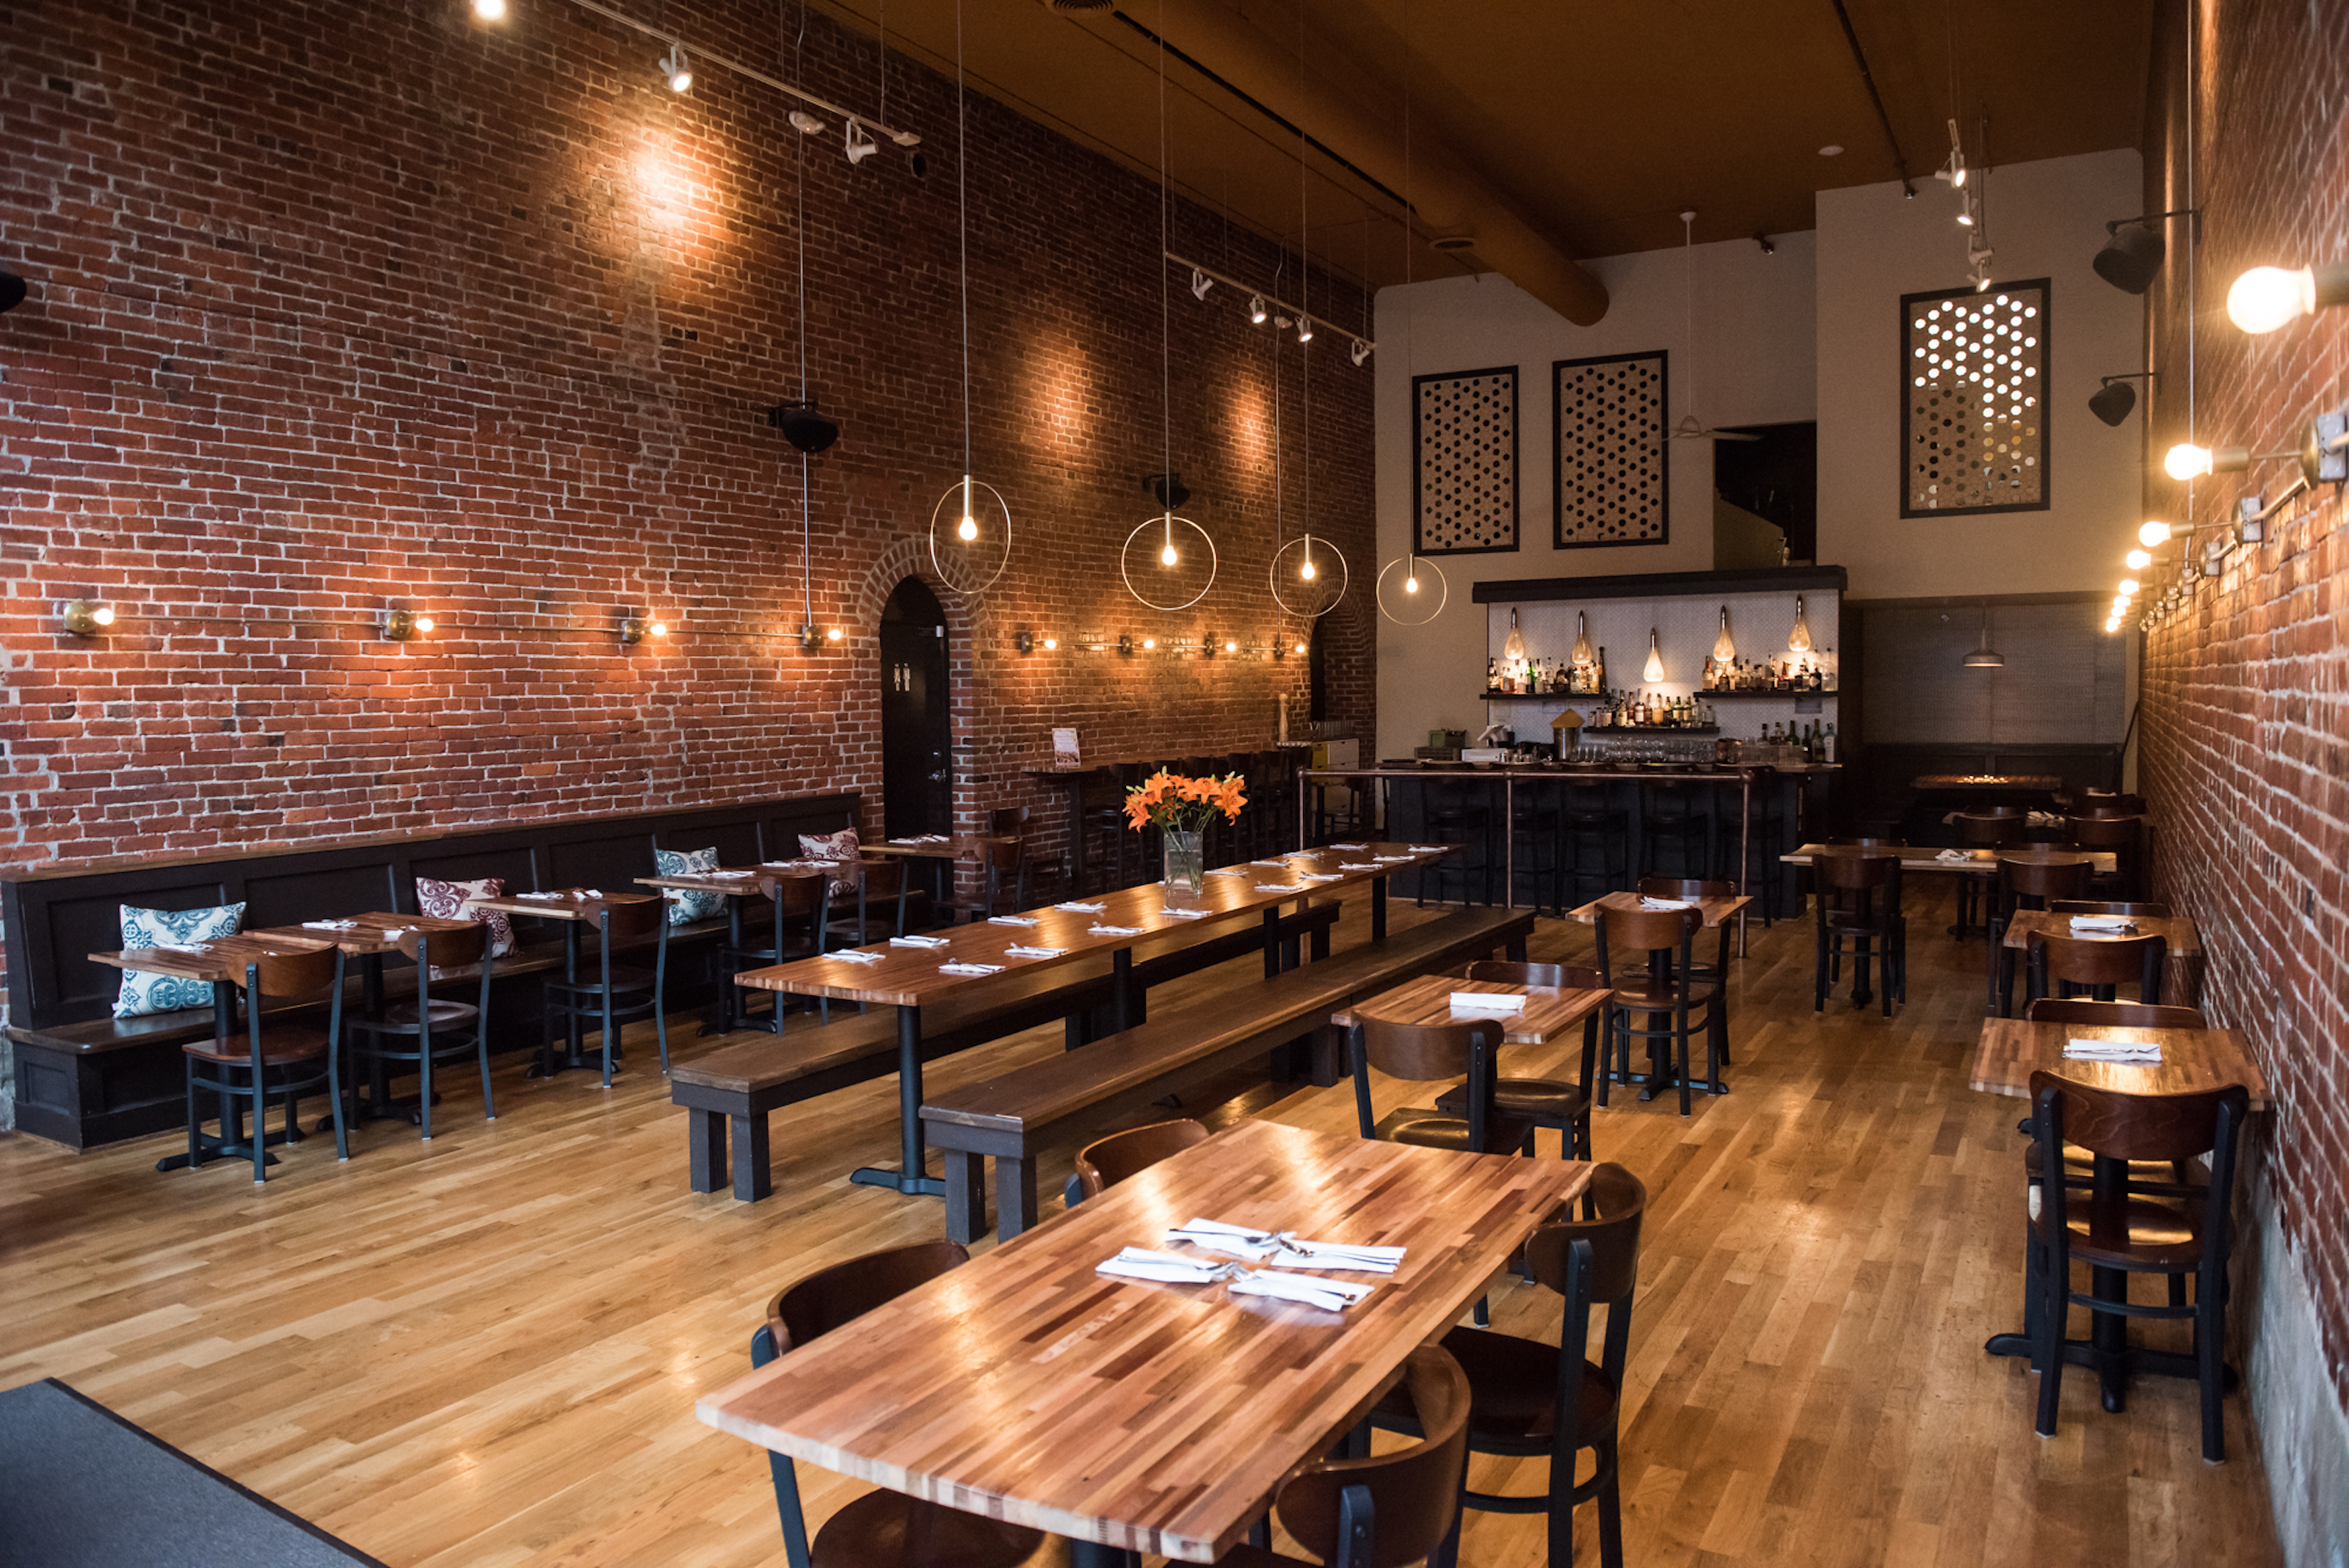 Restaurants That Are Extremely Close To Light Rail Stops For